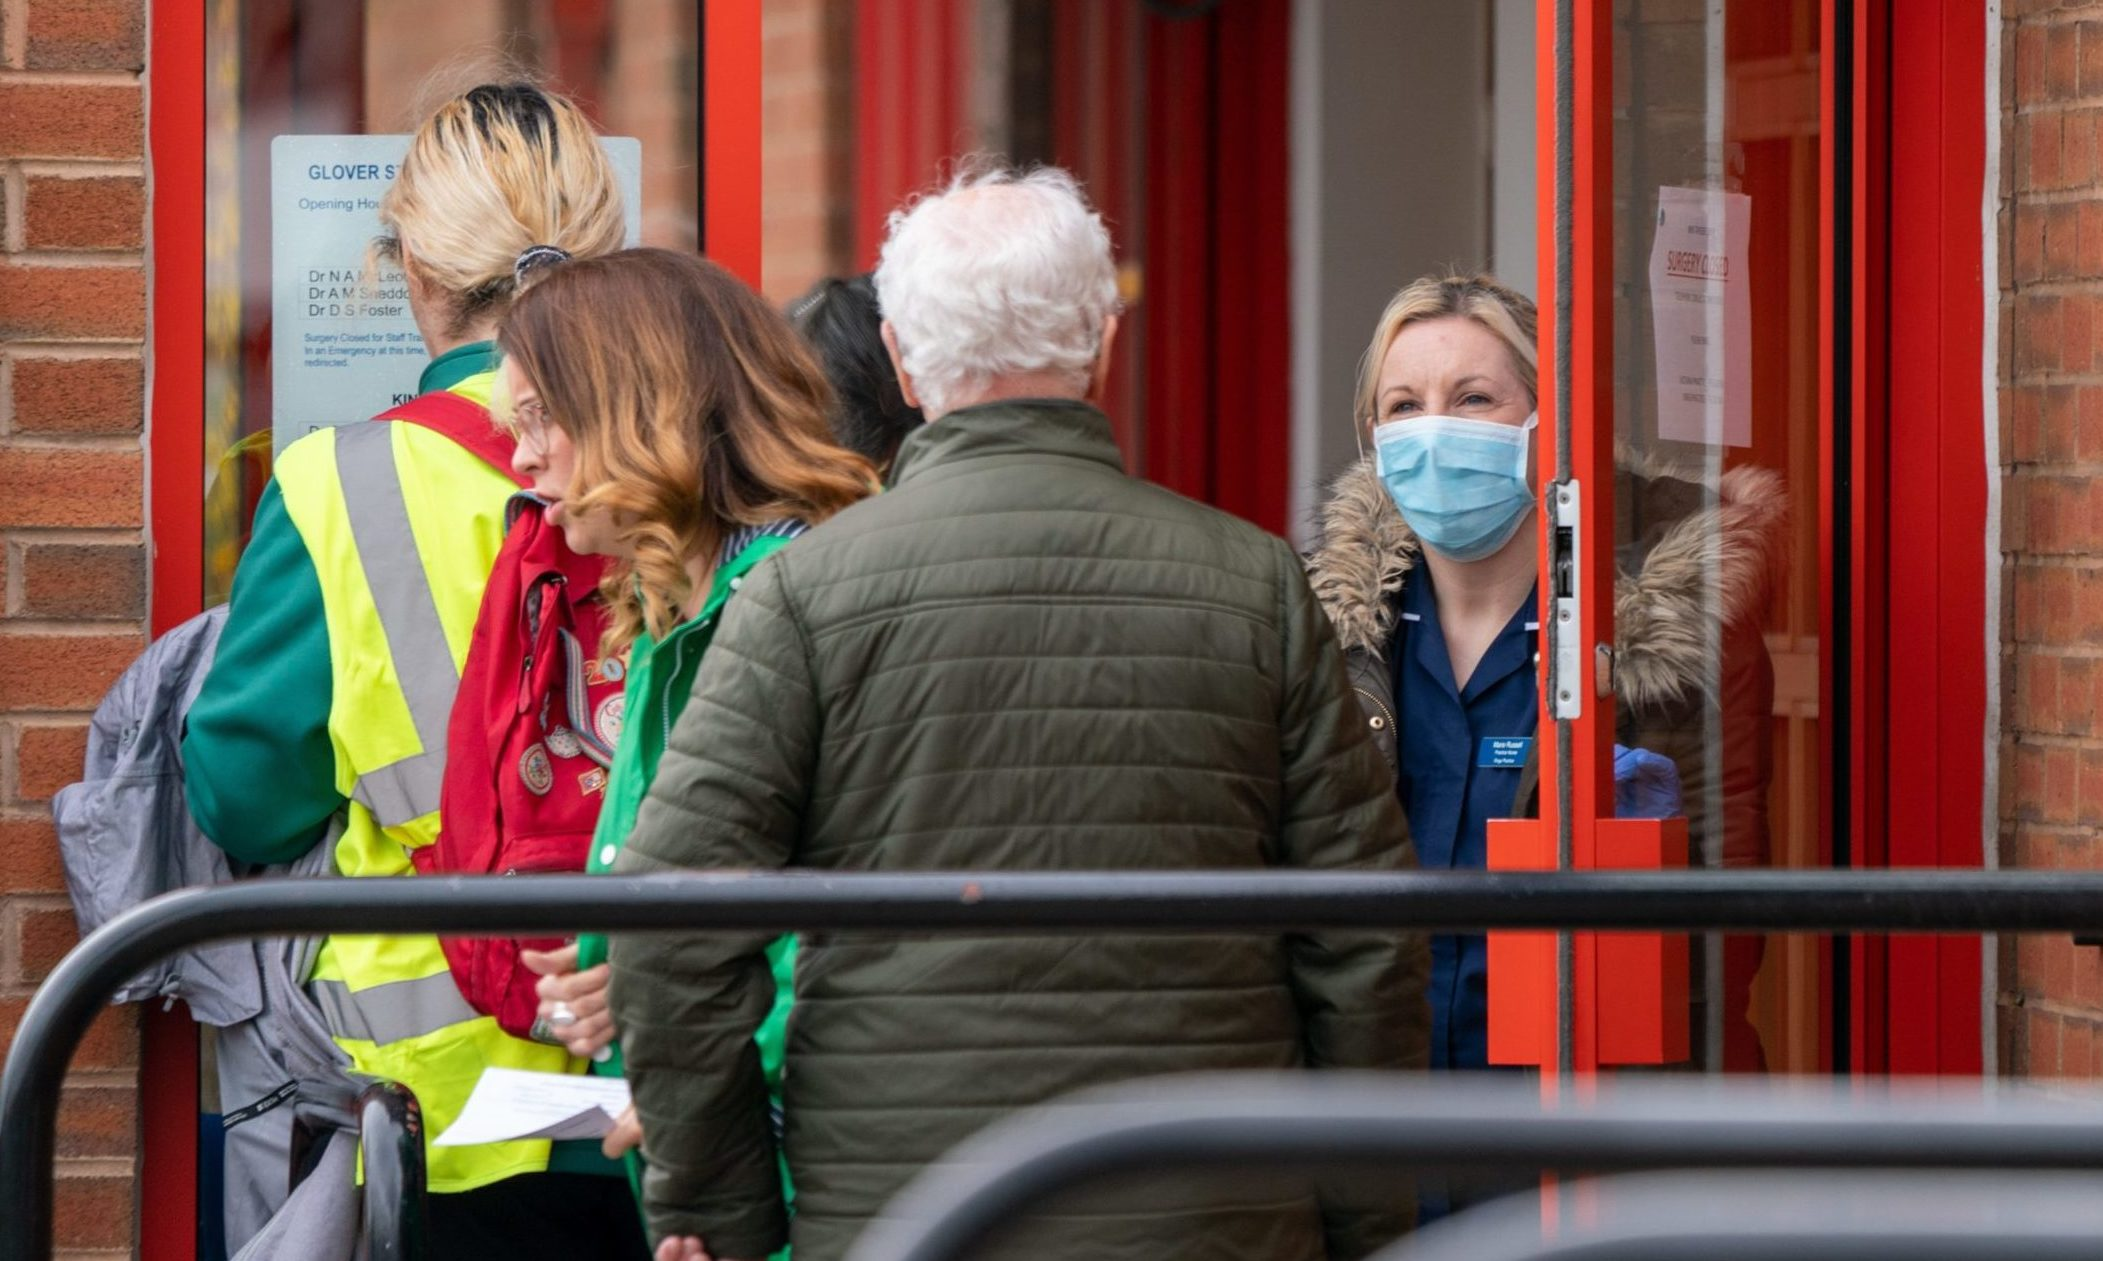 Patients being turned away at Glover Street Surgery, Perth.